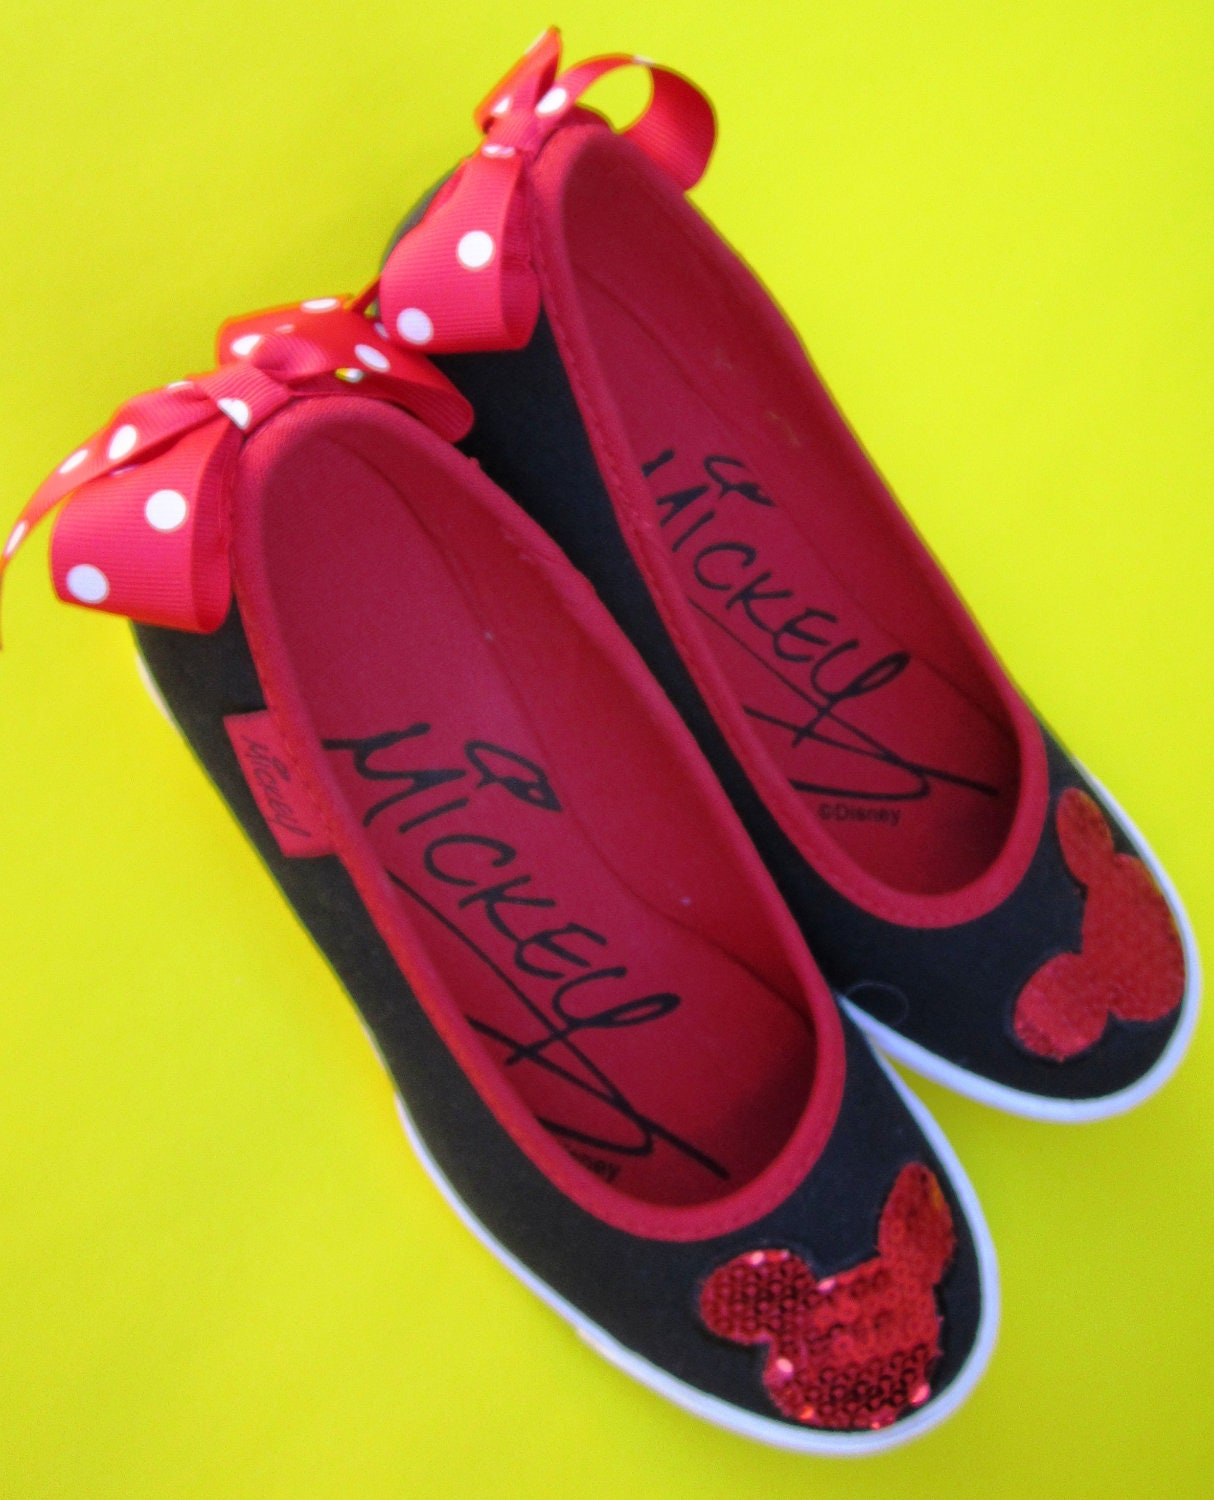 Mickey Mouse Shoes Disney Wedges High Heels Sequined Sporty